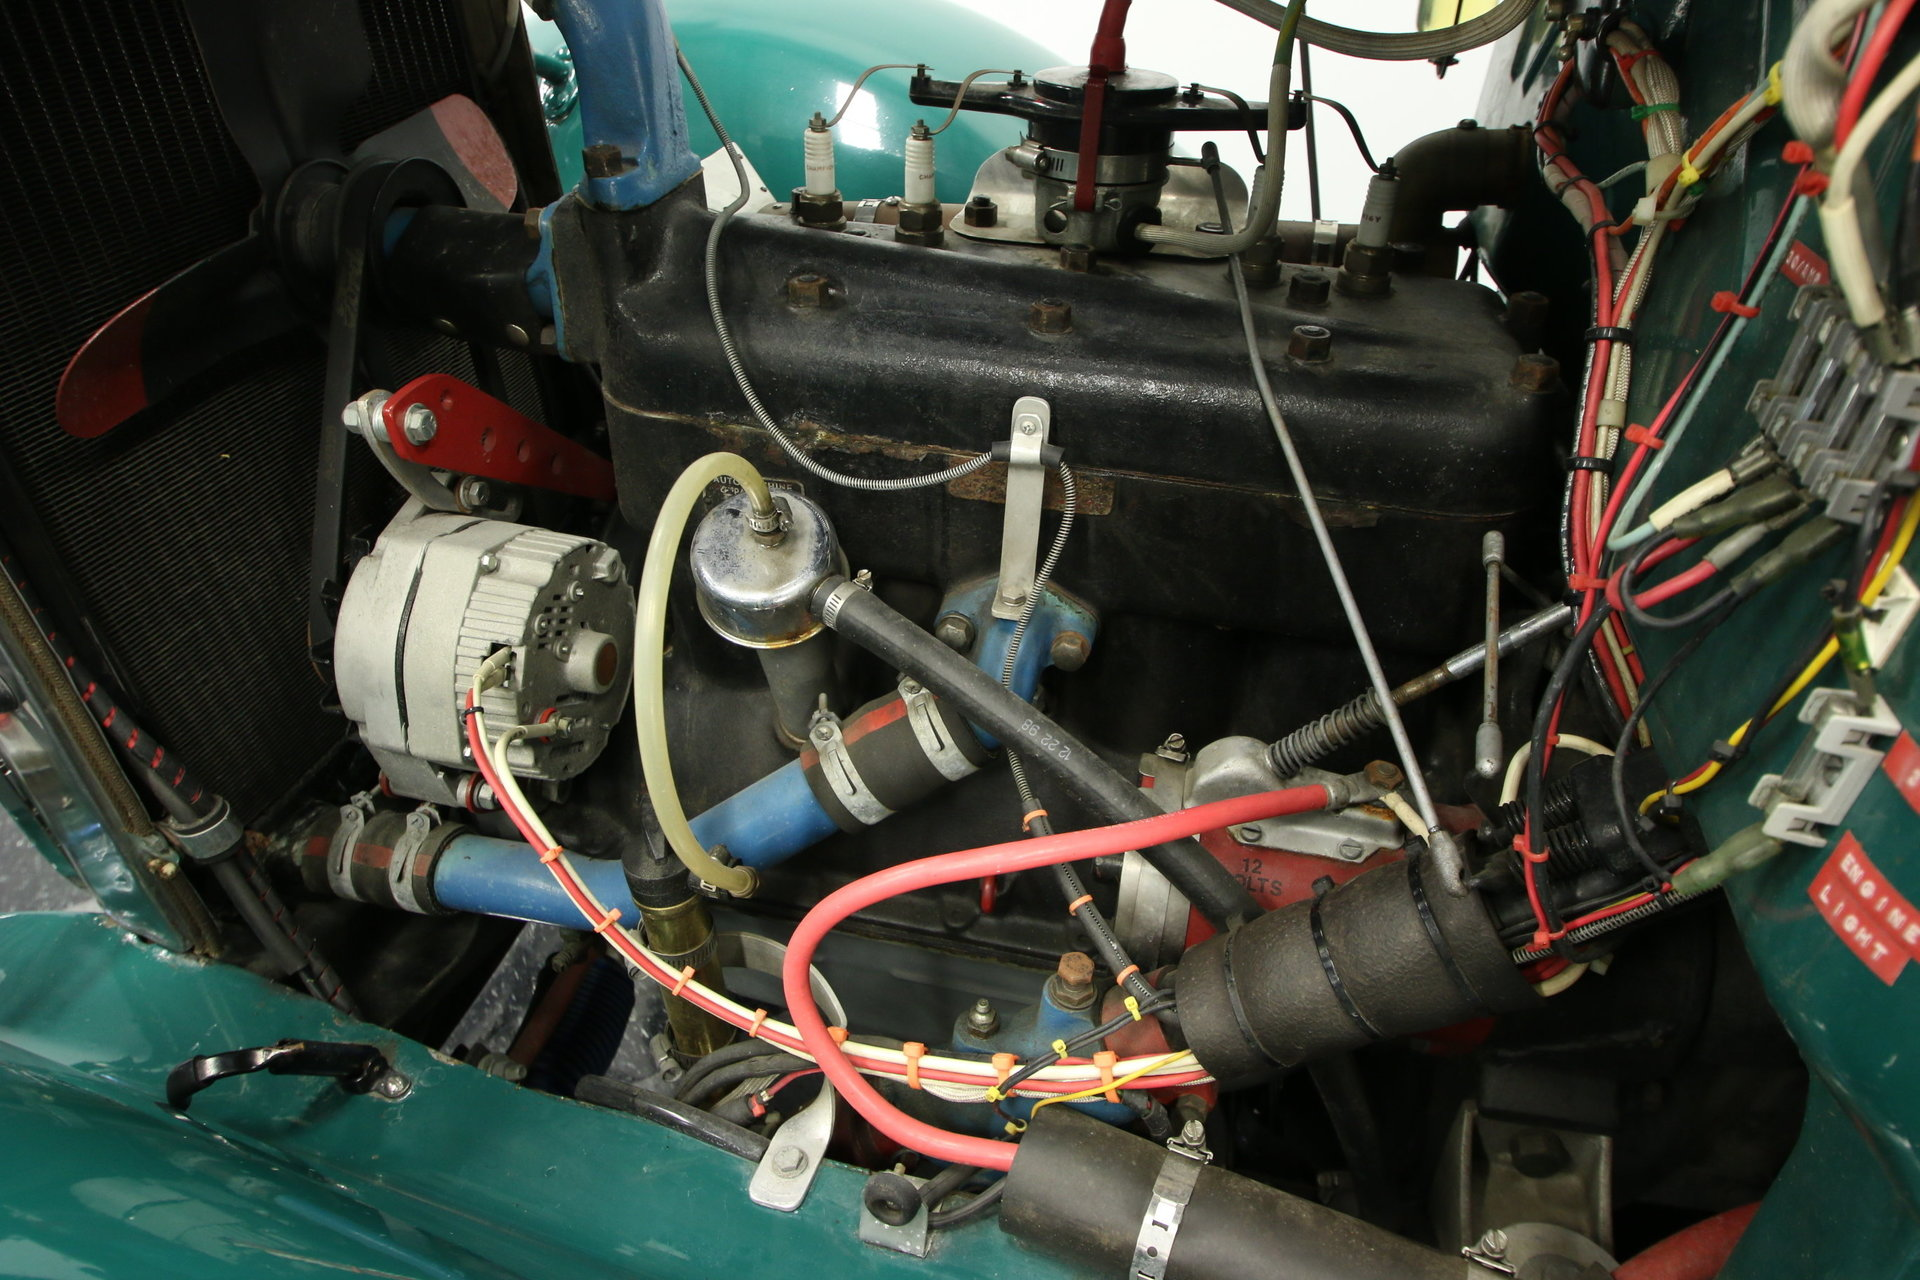 1930 Ford Model A Streetside Classics The Nations Trusted Electrical Wiring Show More Photos